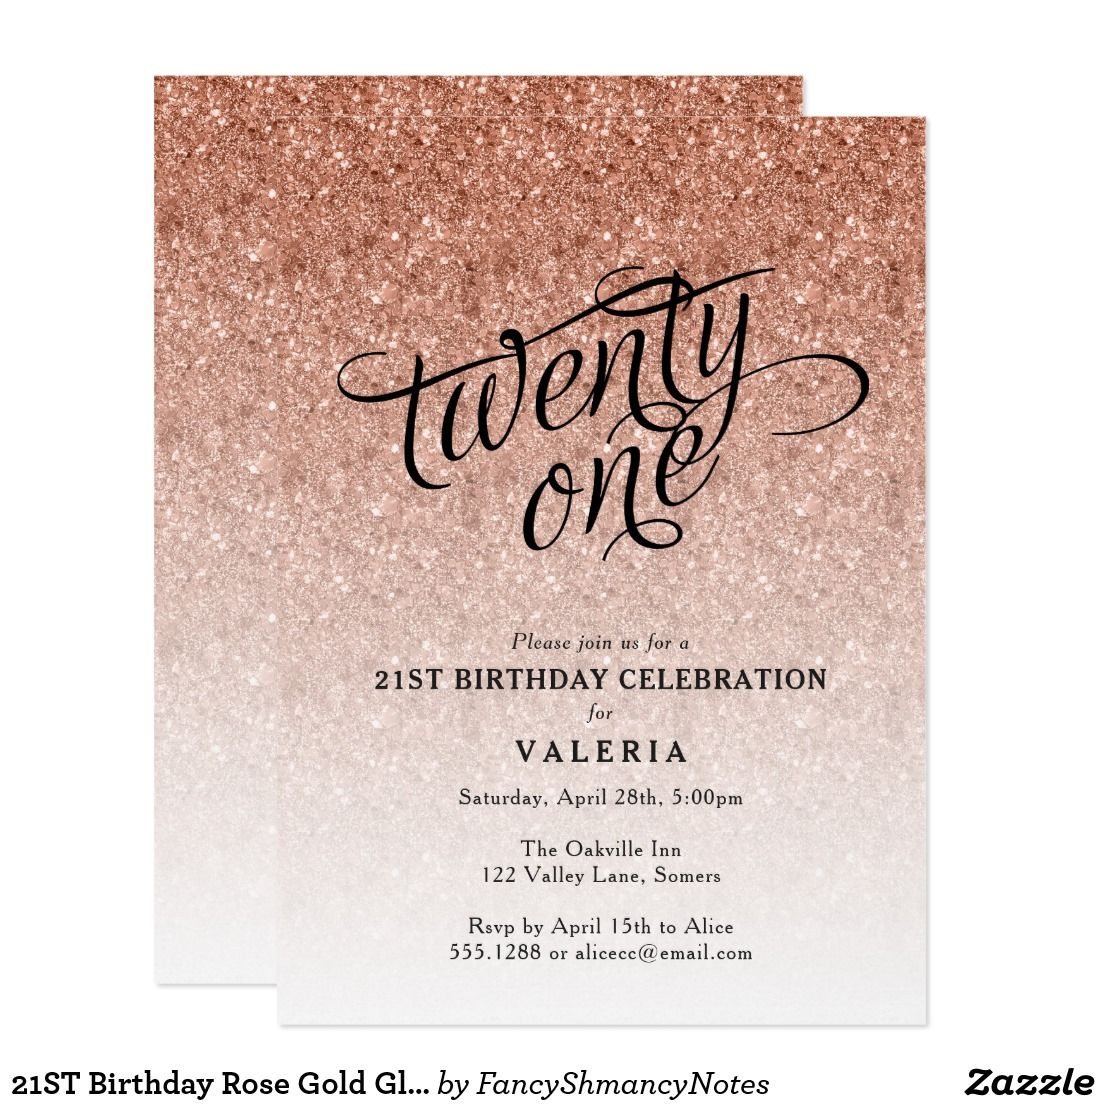 21ST Birthday Rose Gold Glitter Invitation This Trendy Ombre Party Features Faux Sparkly And A Fancy